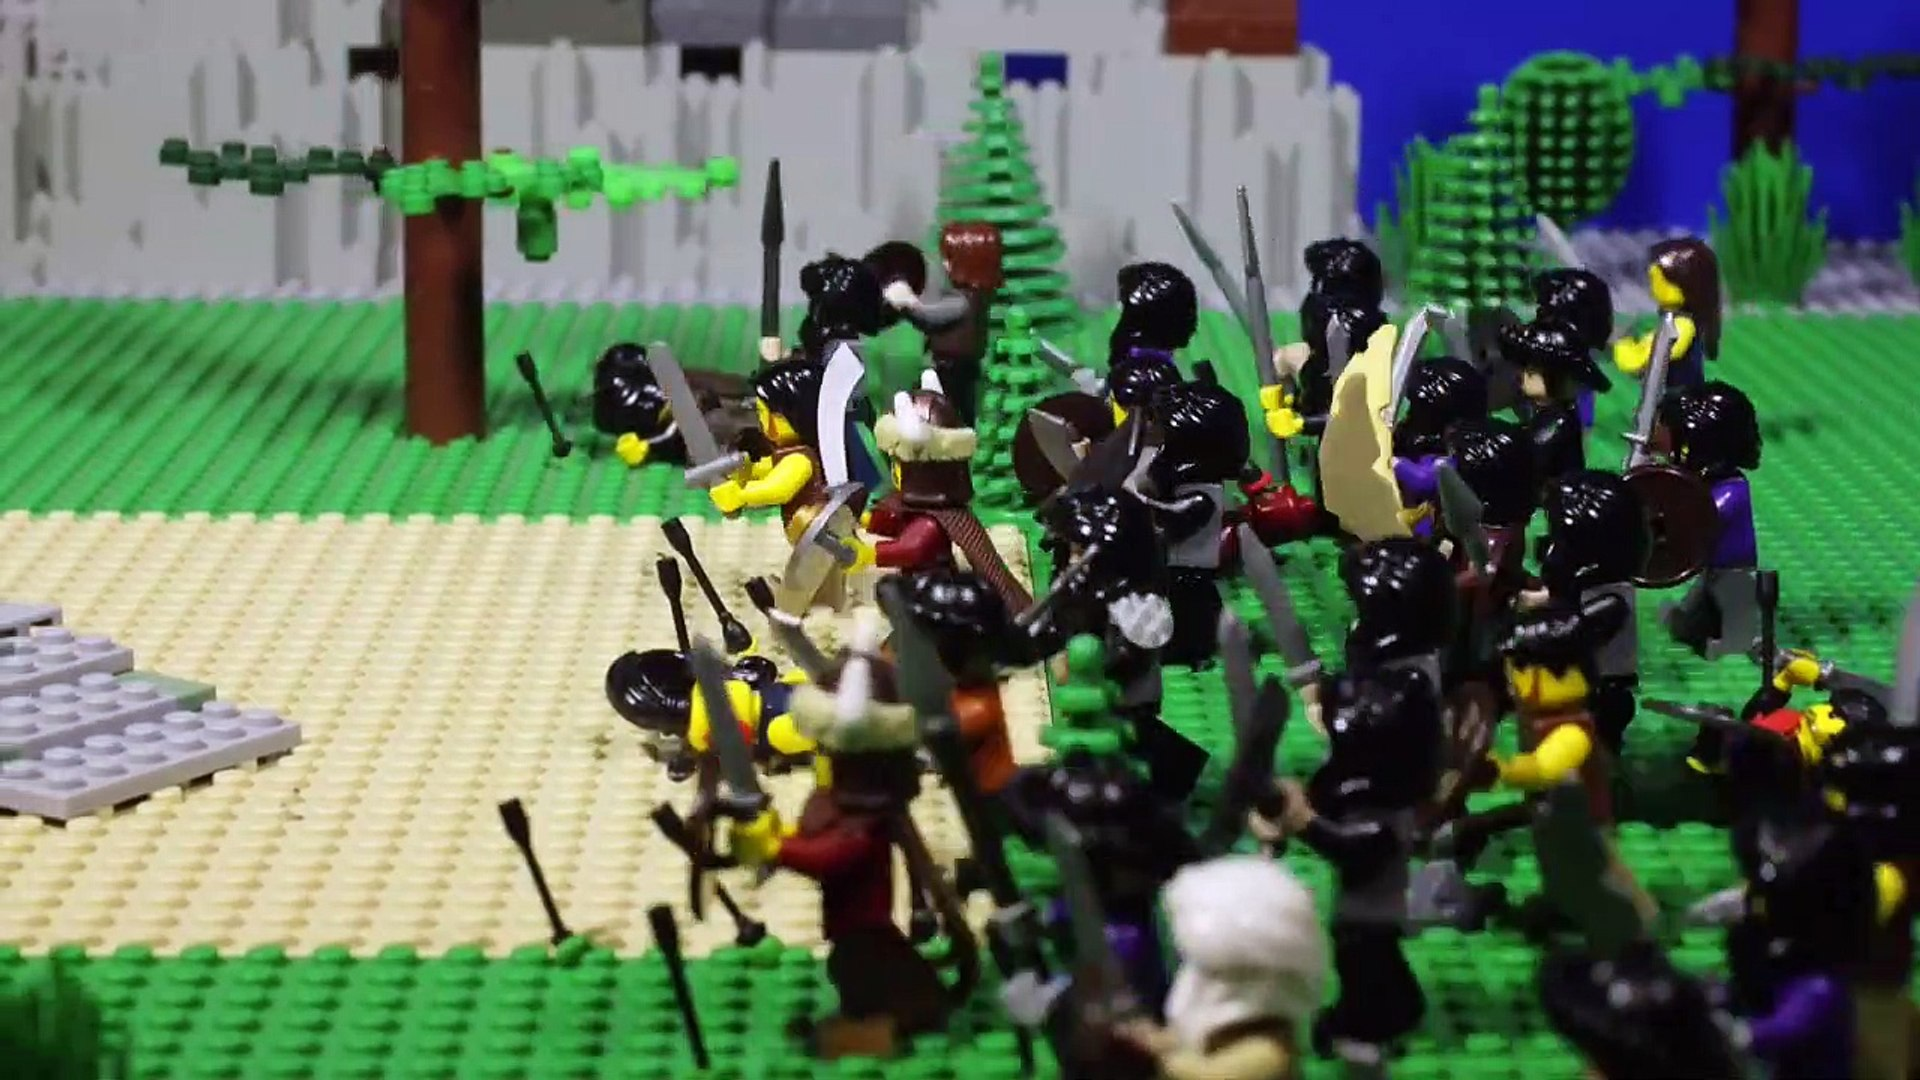 Mongols invasion into Europe / Medieval battle / Lego film (animation)